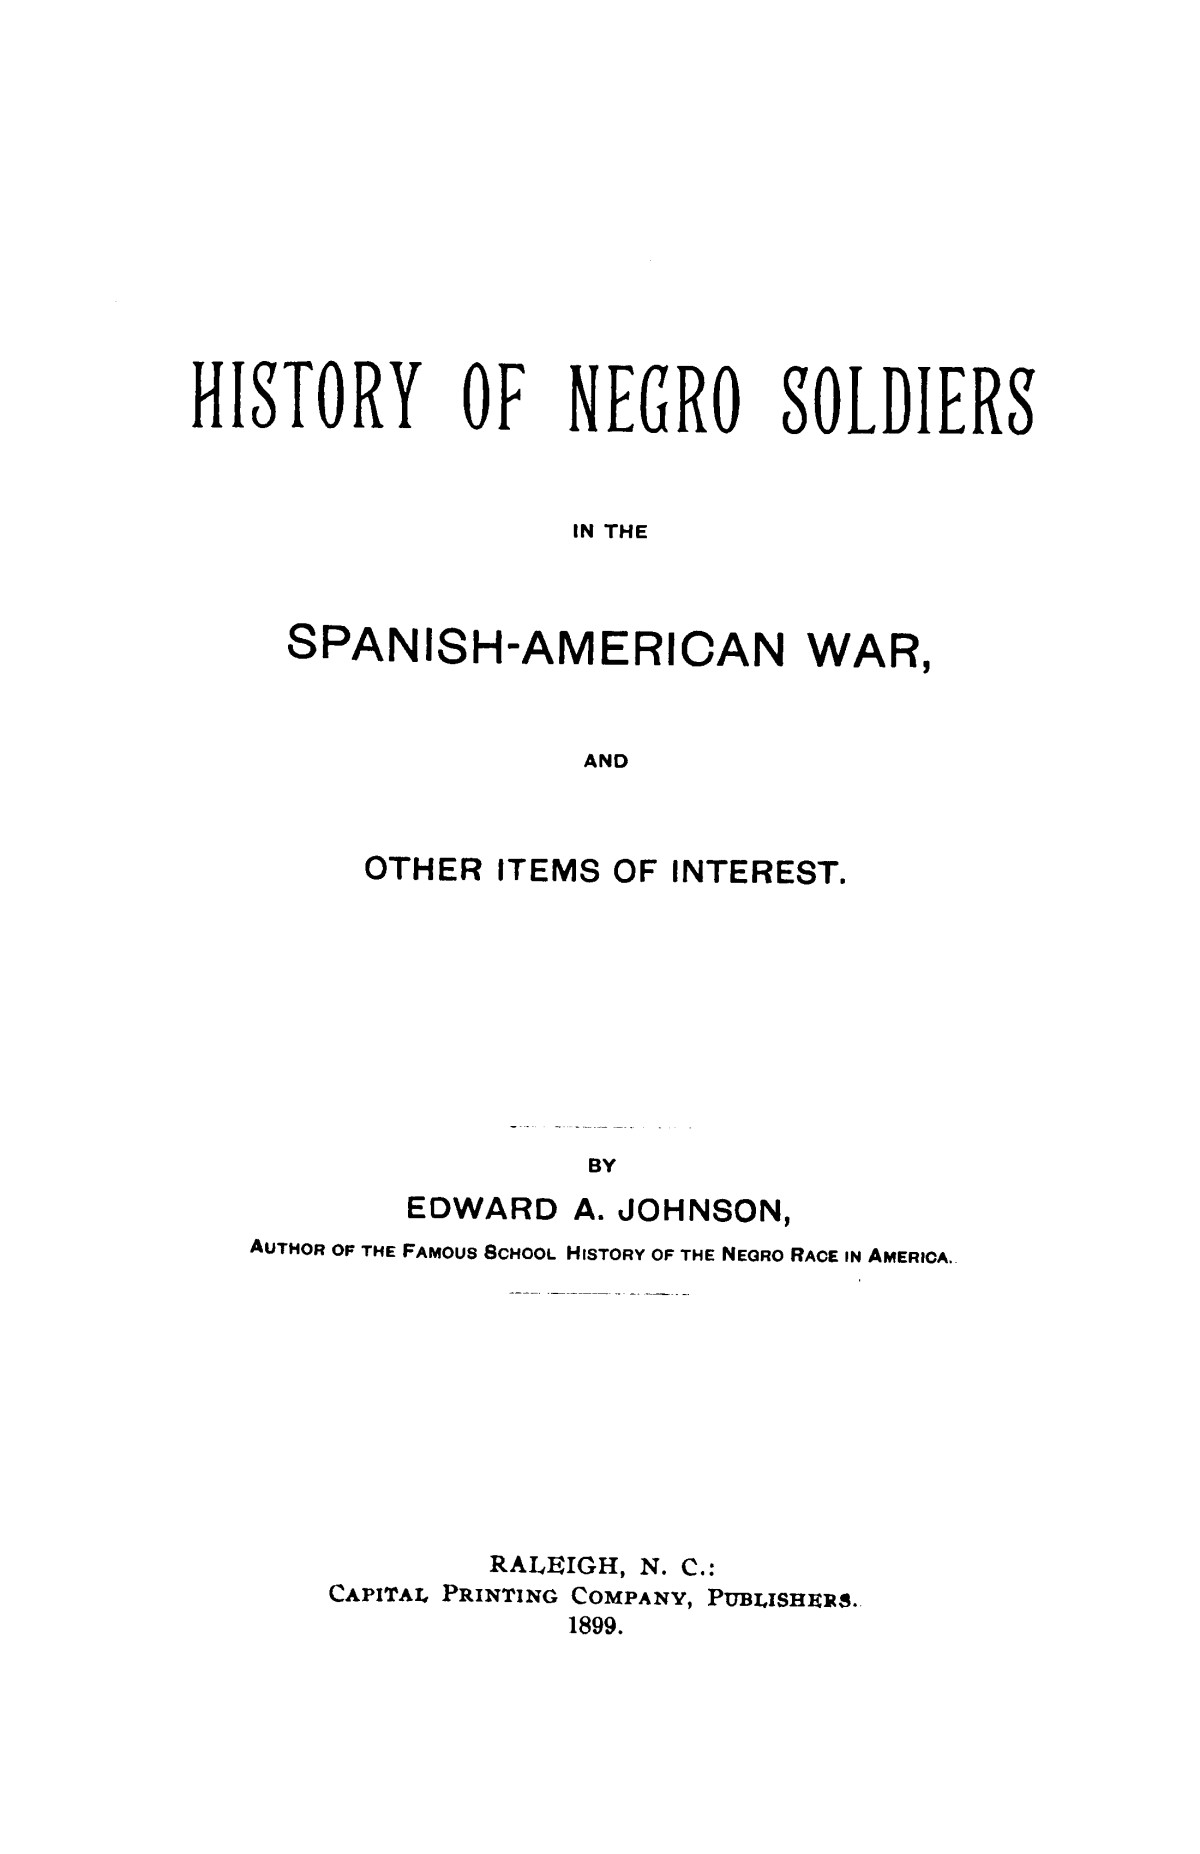 History of Negro soldiers in the Spanish-American War, and other items of interest.                                                                                                      [Sequence #]: 3 of 232